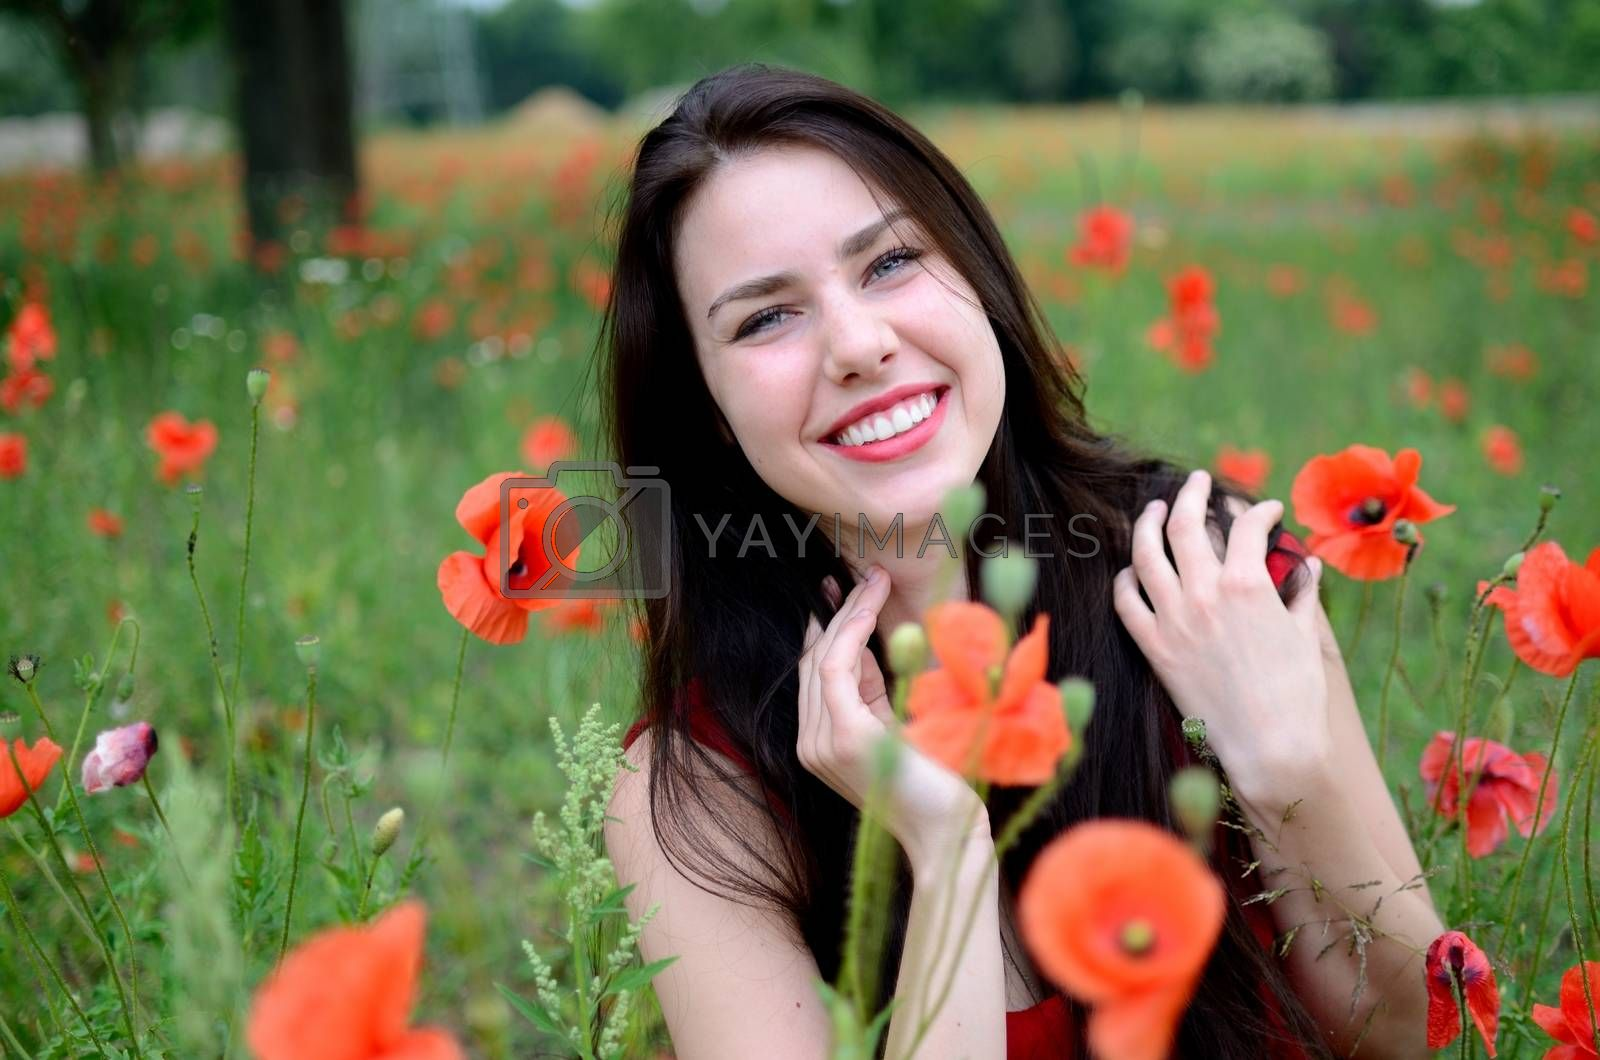 Royalty free image of Smiling girl with poppies by bartekchiny